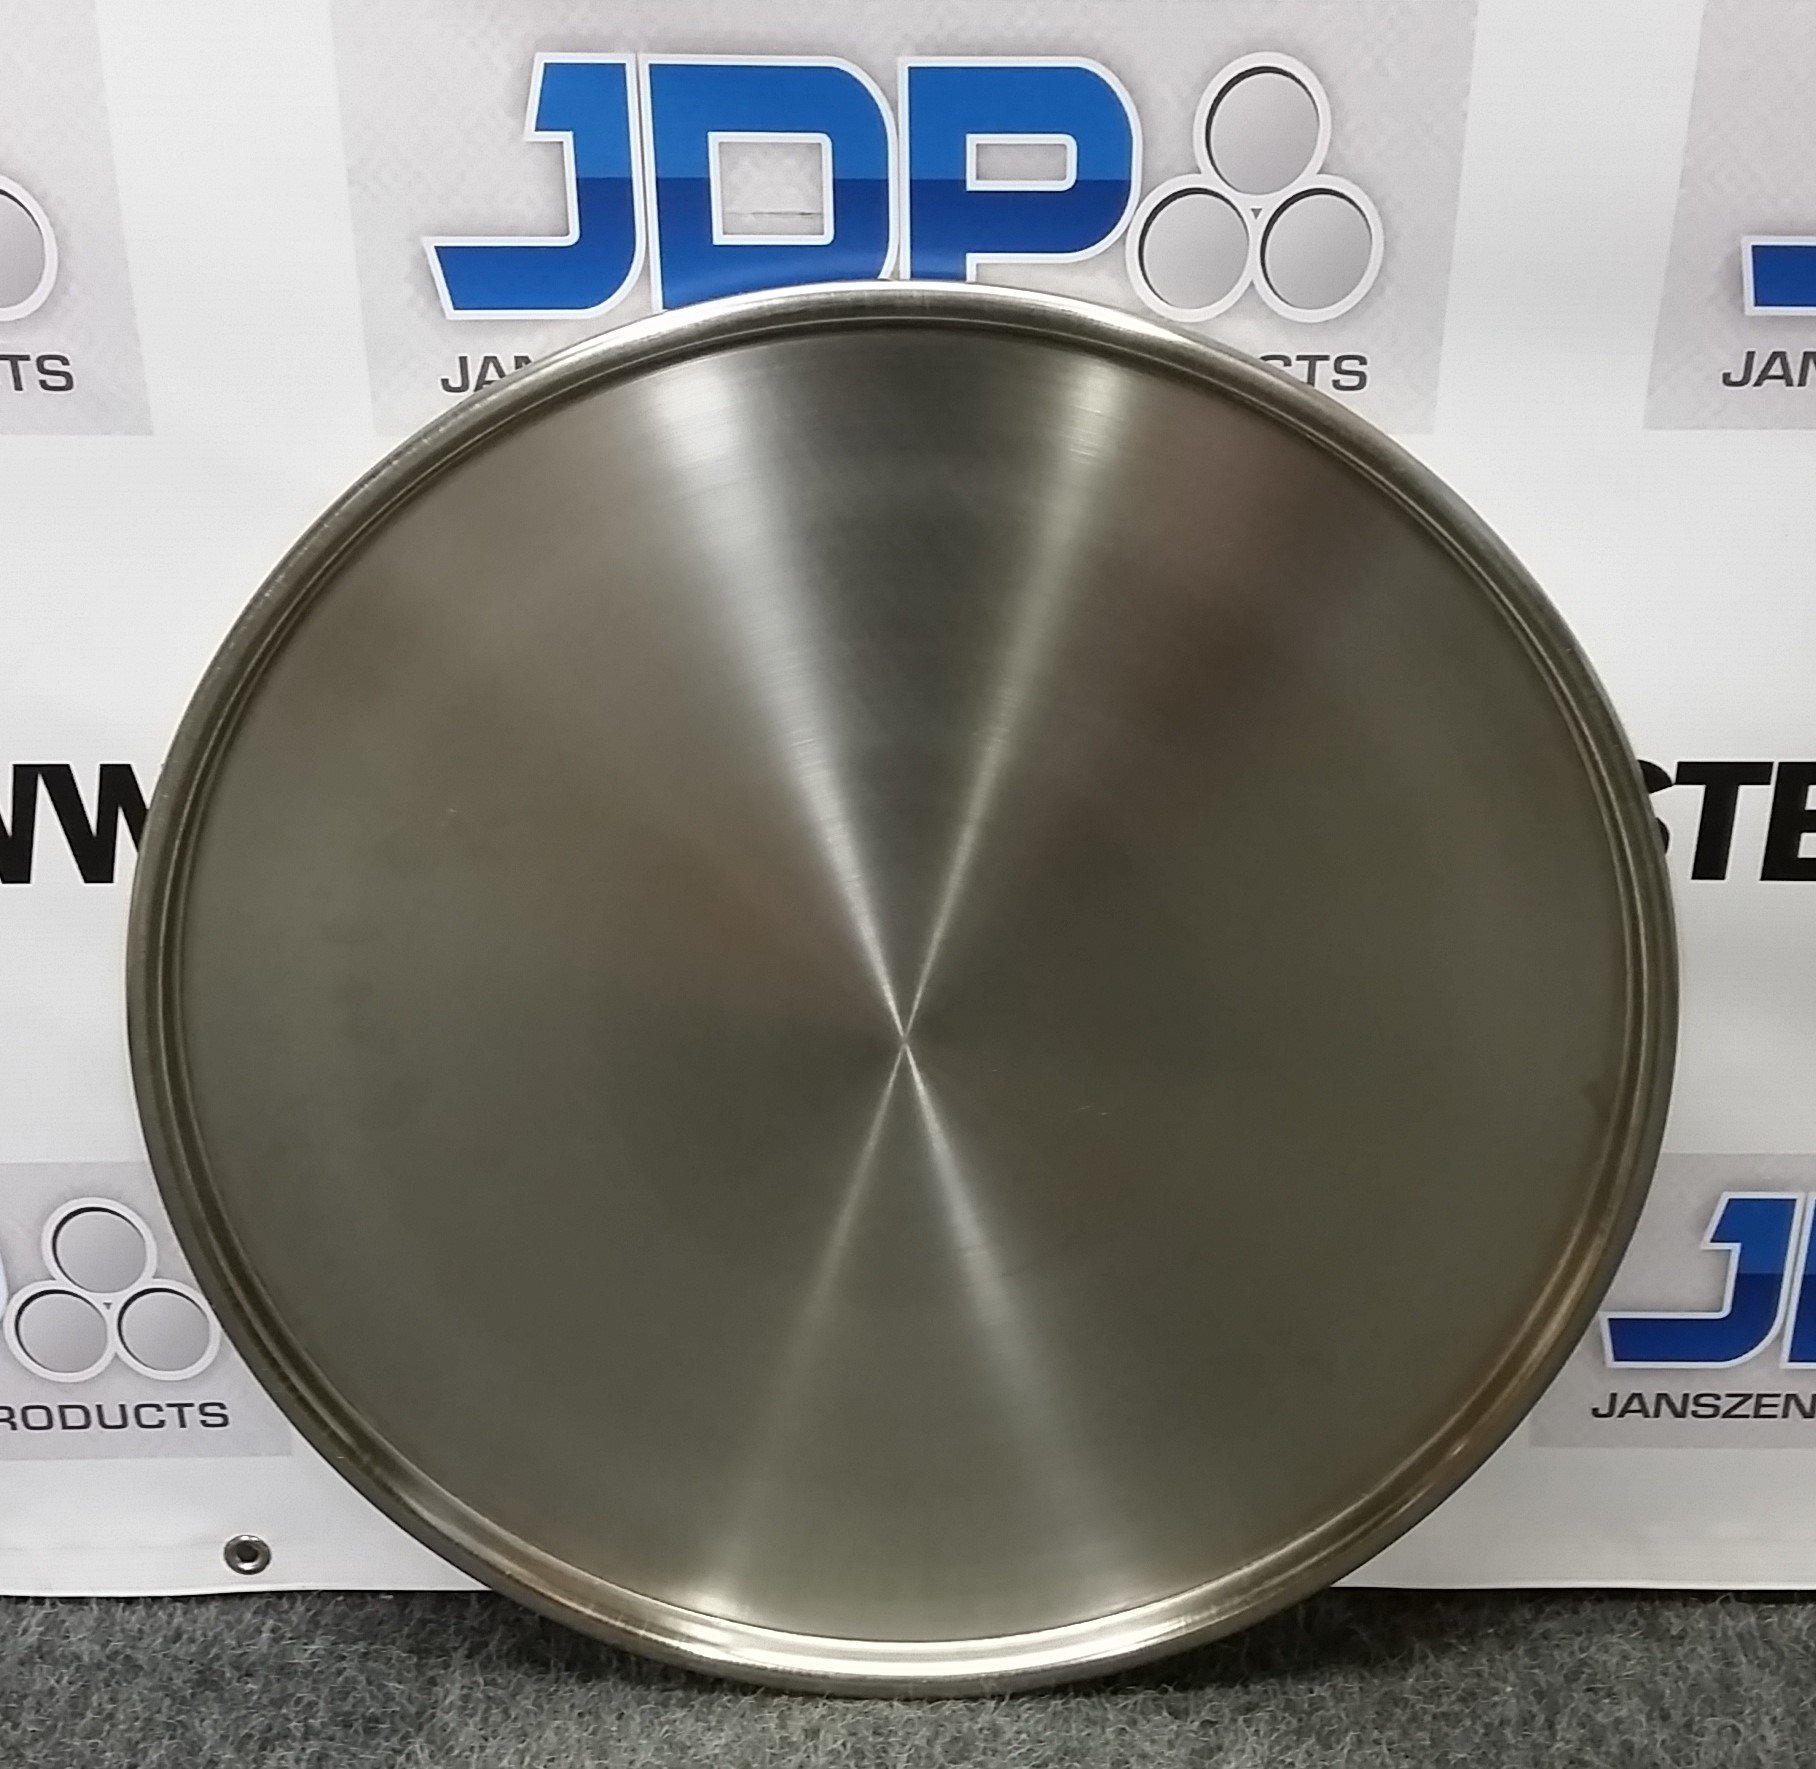 55 gallon stainless steel drum lid accessories used for Metal 55 gallon drum